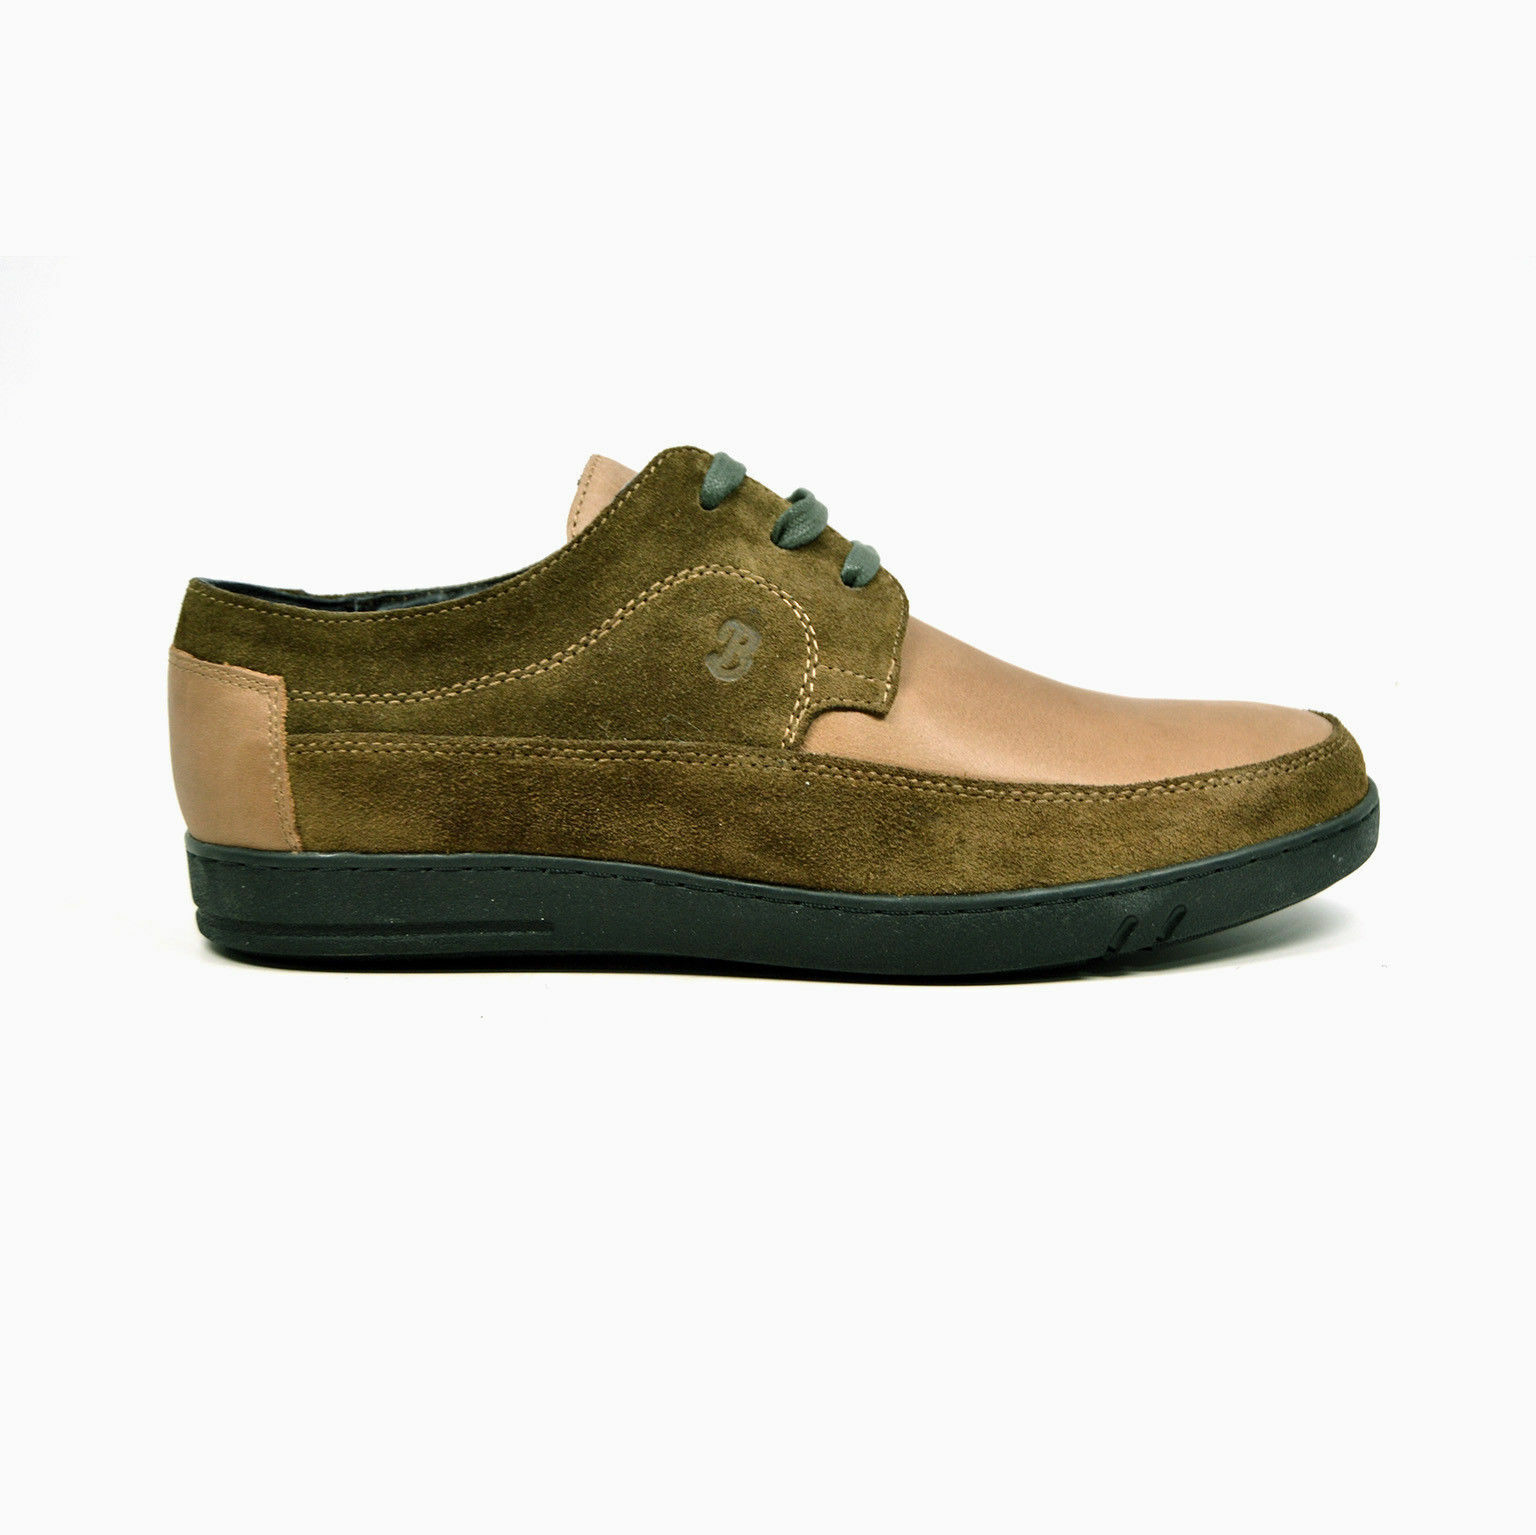 MENS BRITISH WALKERS ORIGINAL BRISTOL TWO TONE OLIVE GREEN SUEDE LEATHER SHOES